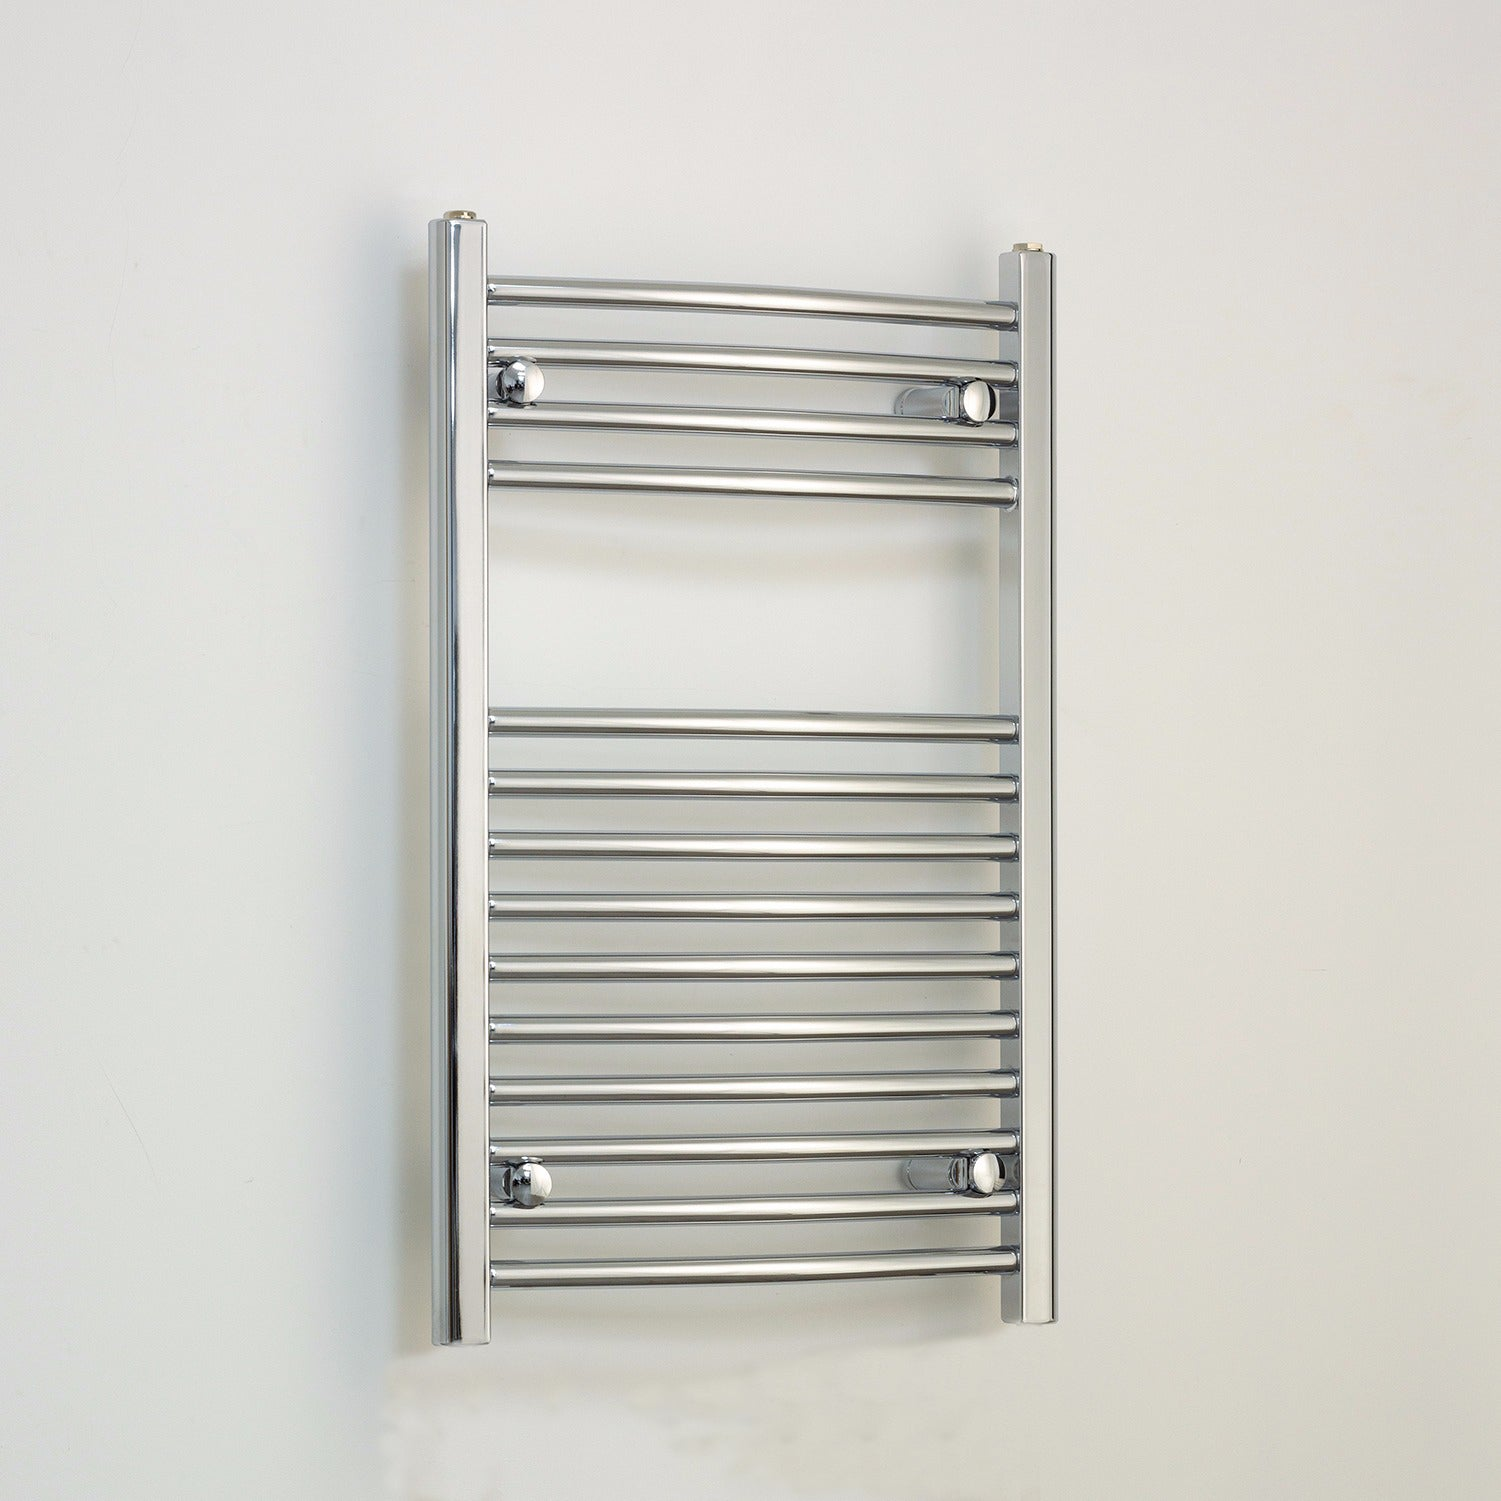 500mm Wide 800mm High Flat Chrome Heated Towel Rail Radiator HTR,Towel Rail Only